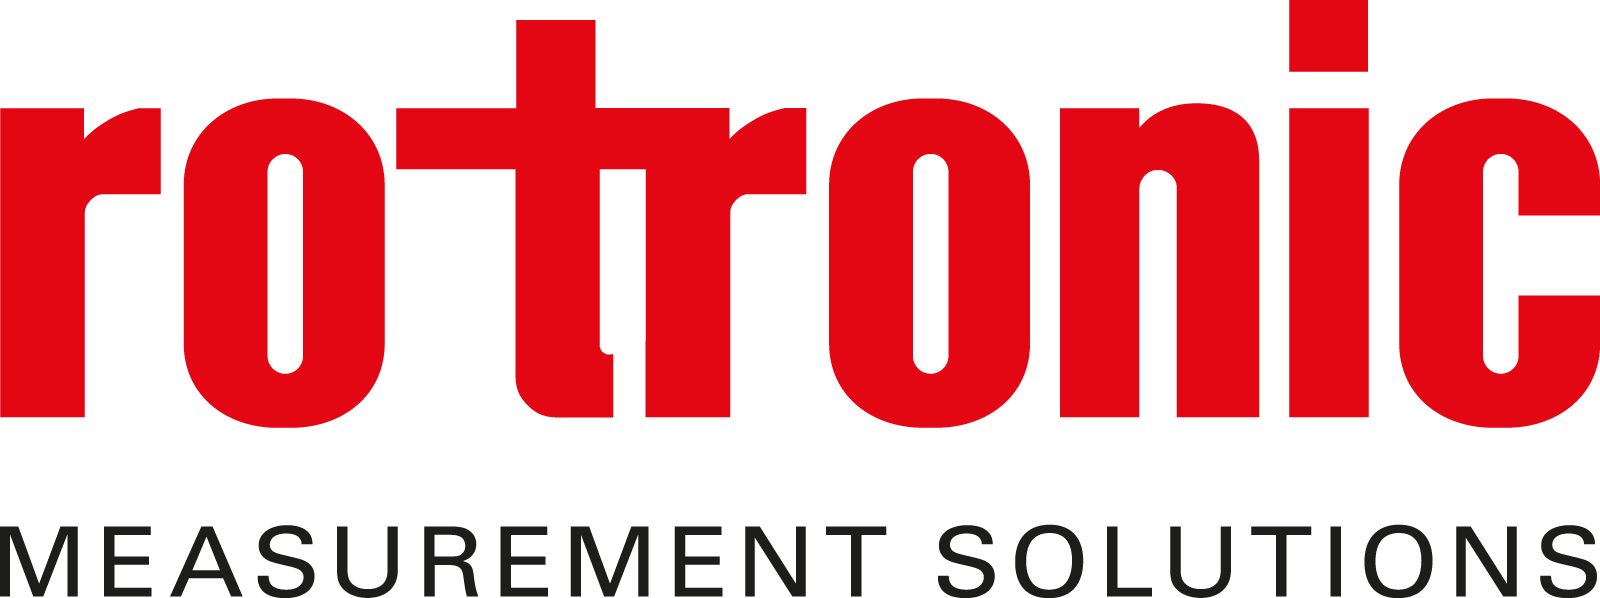 Rotronic Measurement Solutions